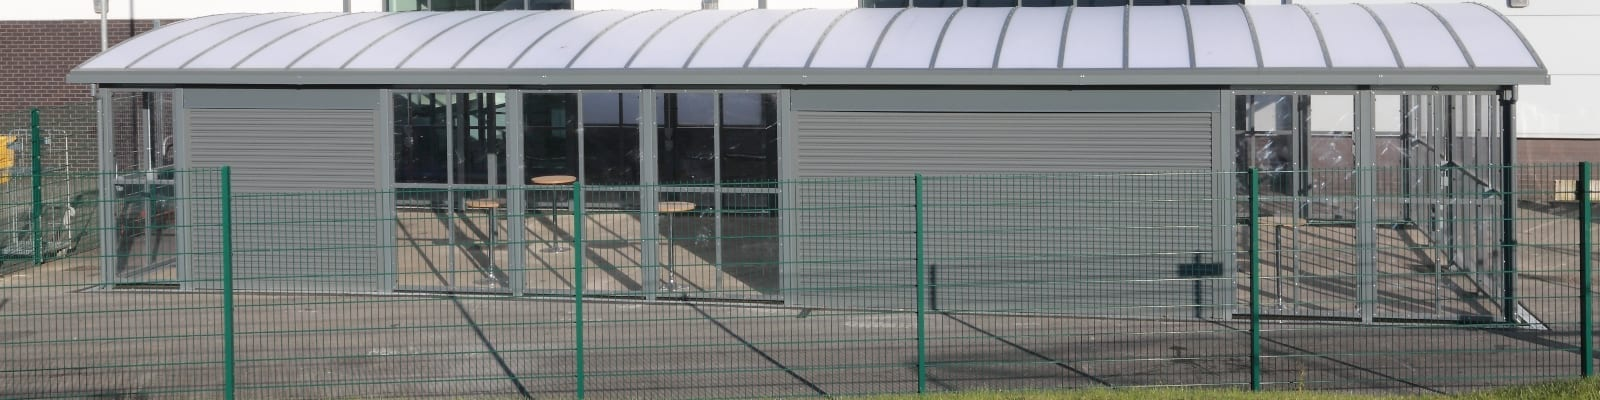 St Cuthbert's School Enclosed Shelter